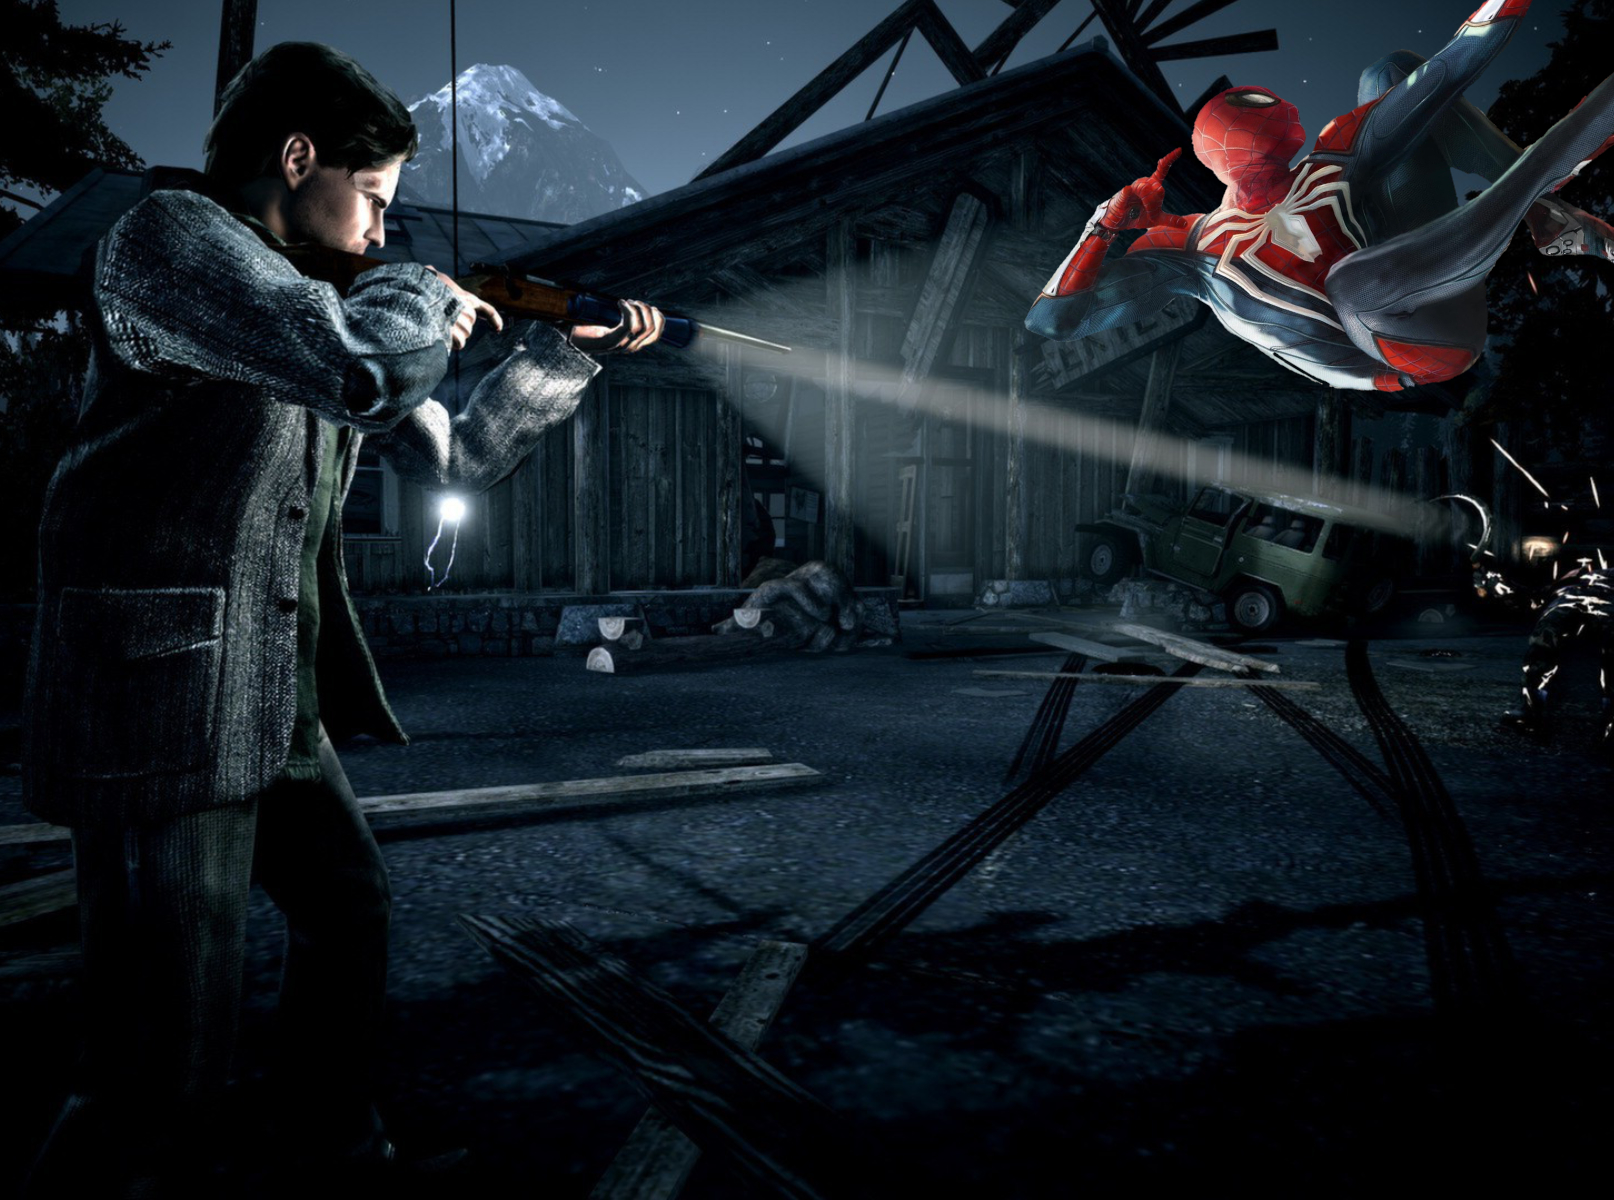 62 – Alan Wake / Spiderman